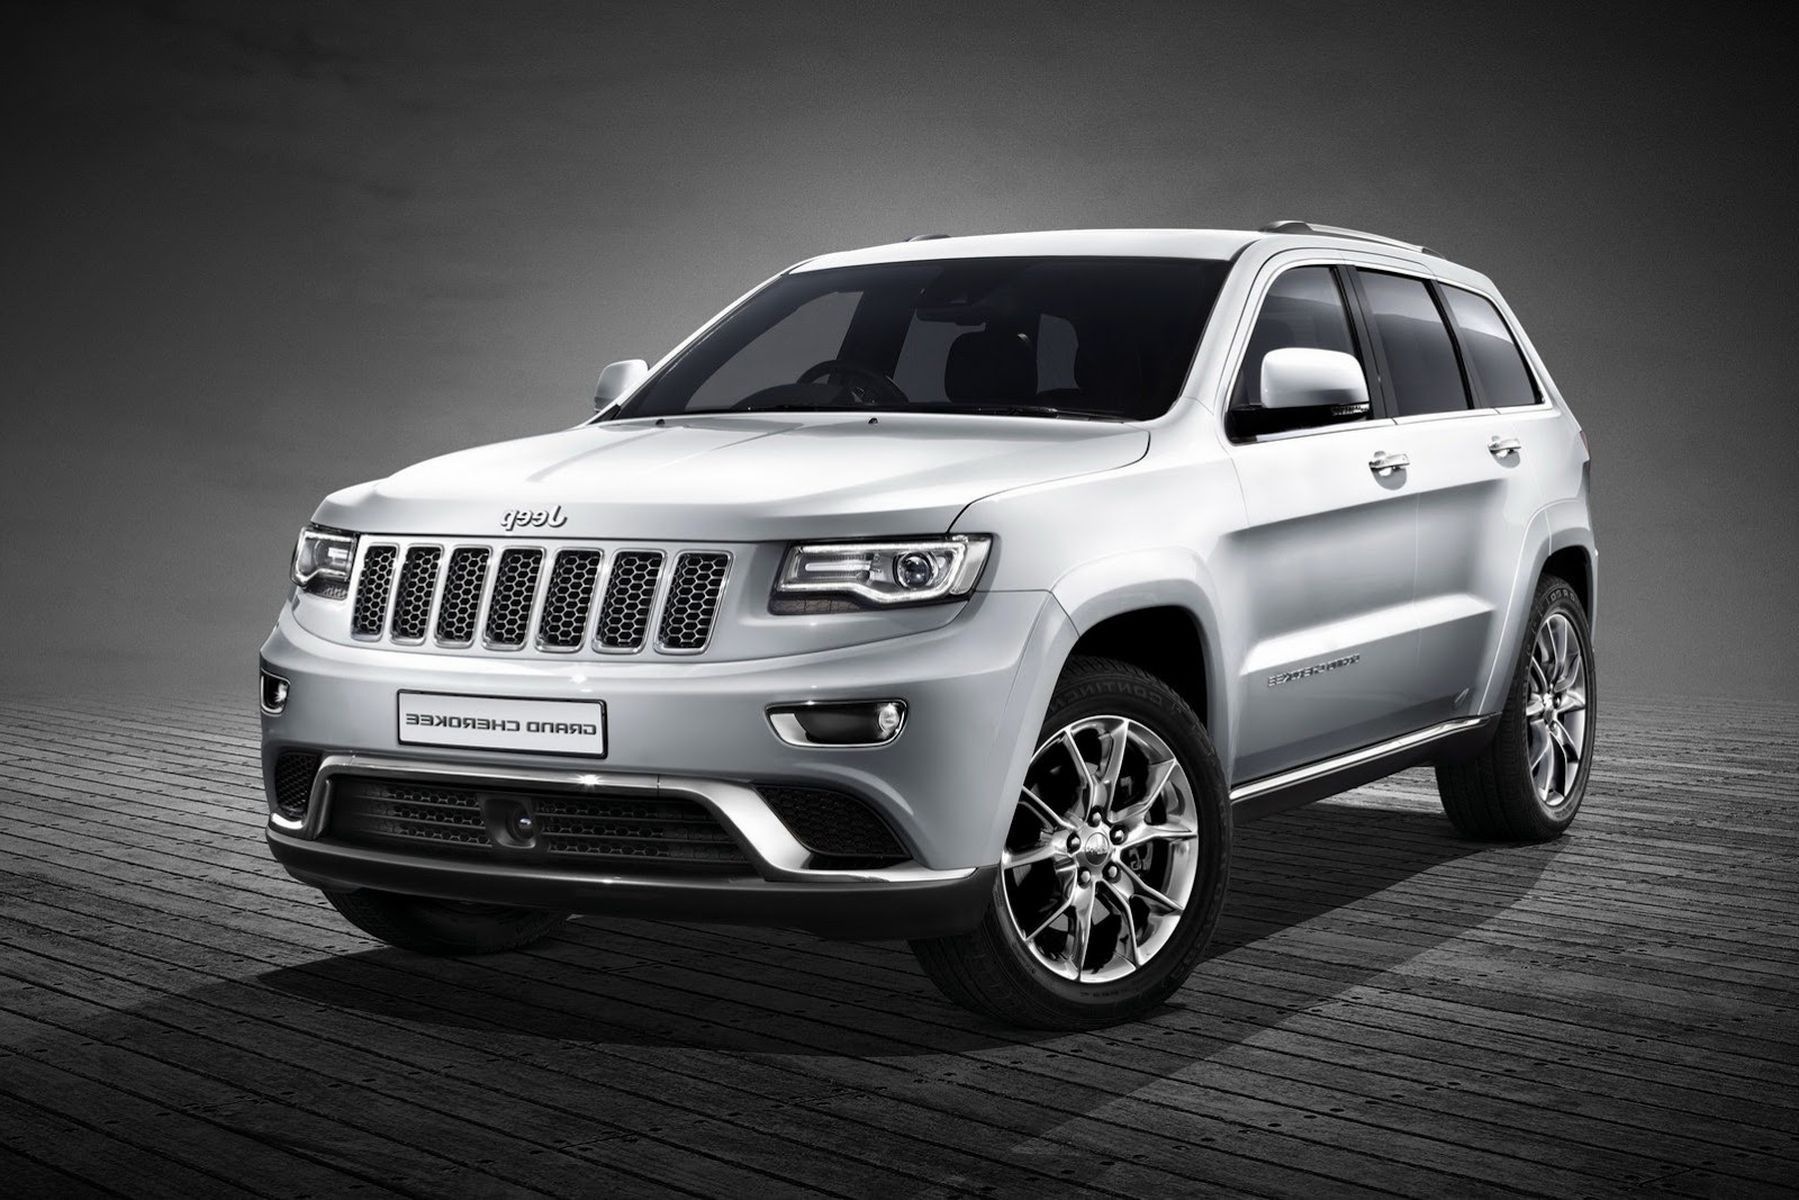 2020 Grand Cherokee Srt Review And Specs Jeep Grand Cherokee Jeep Jeep Grand Cherokee Models